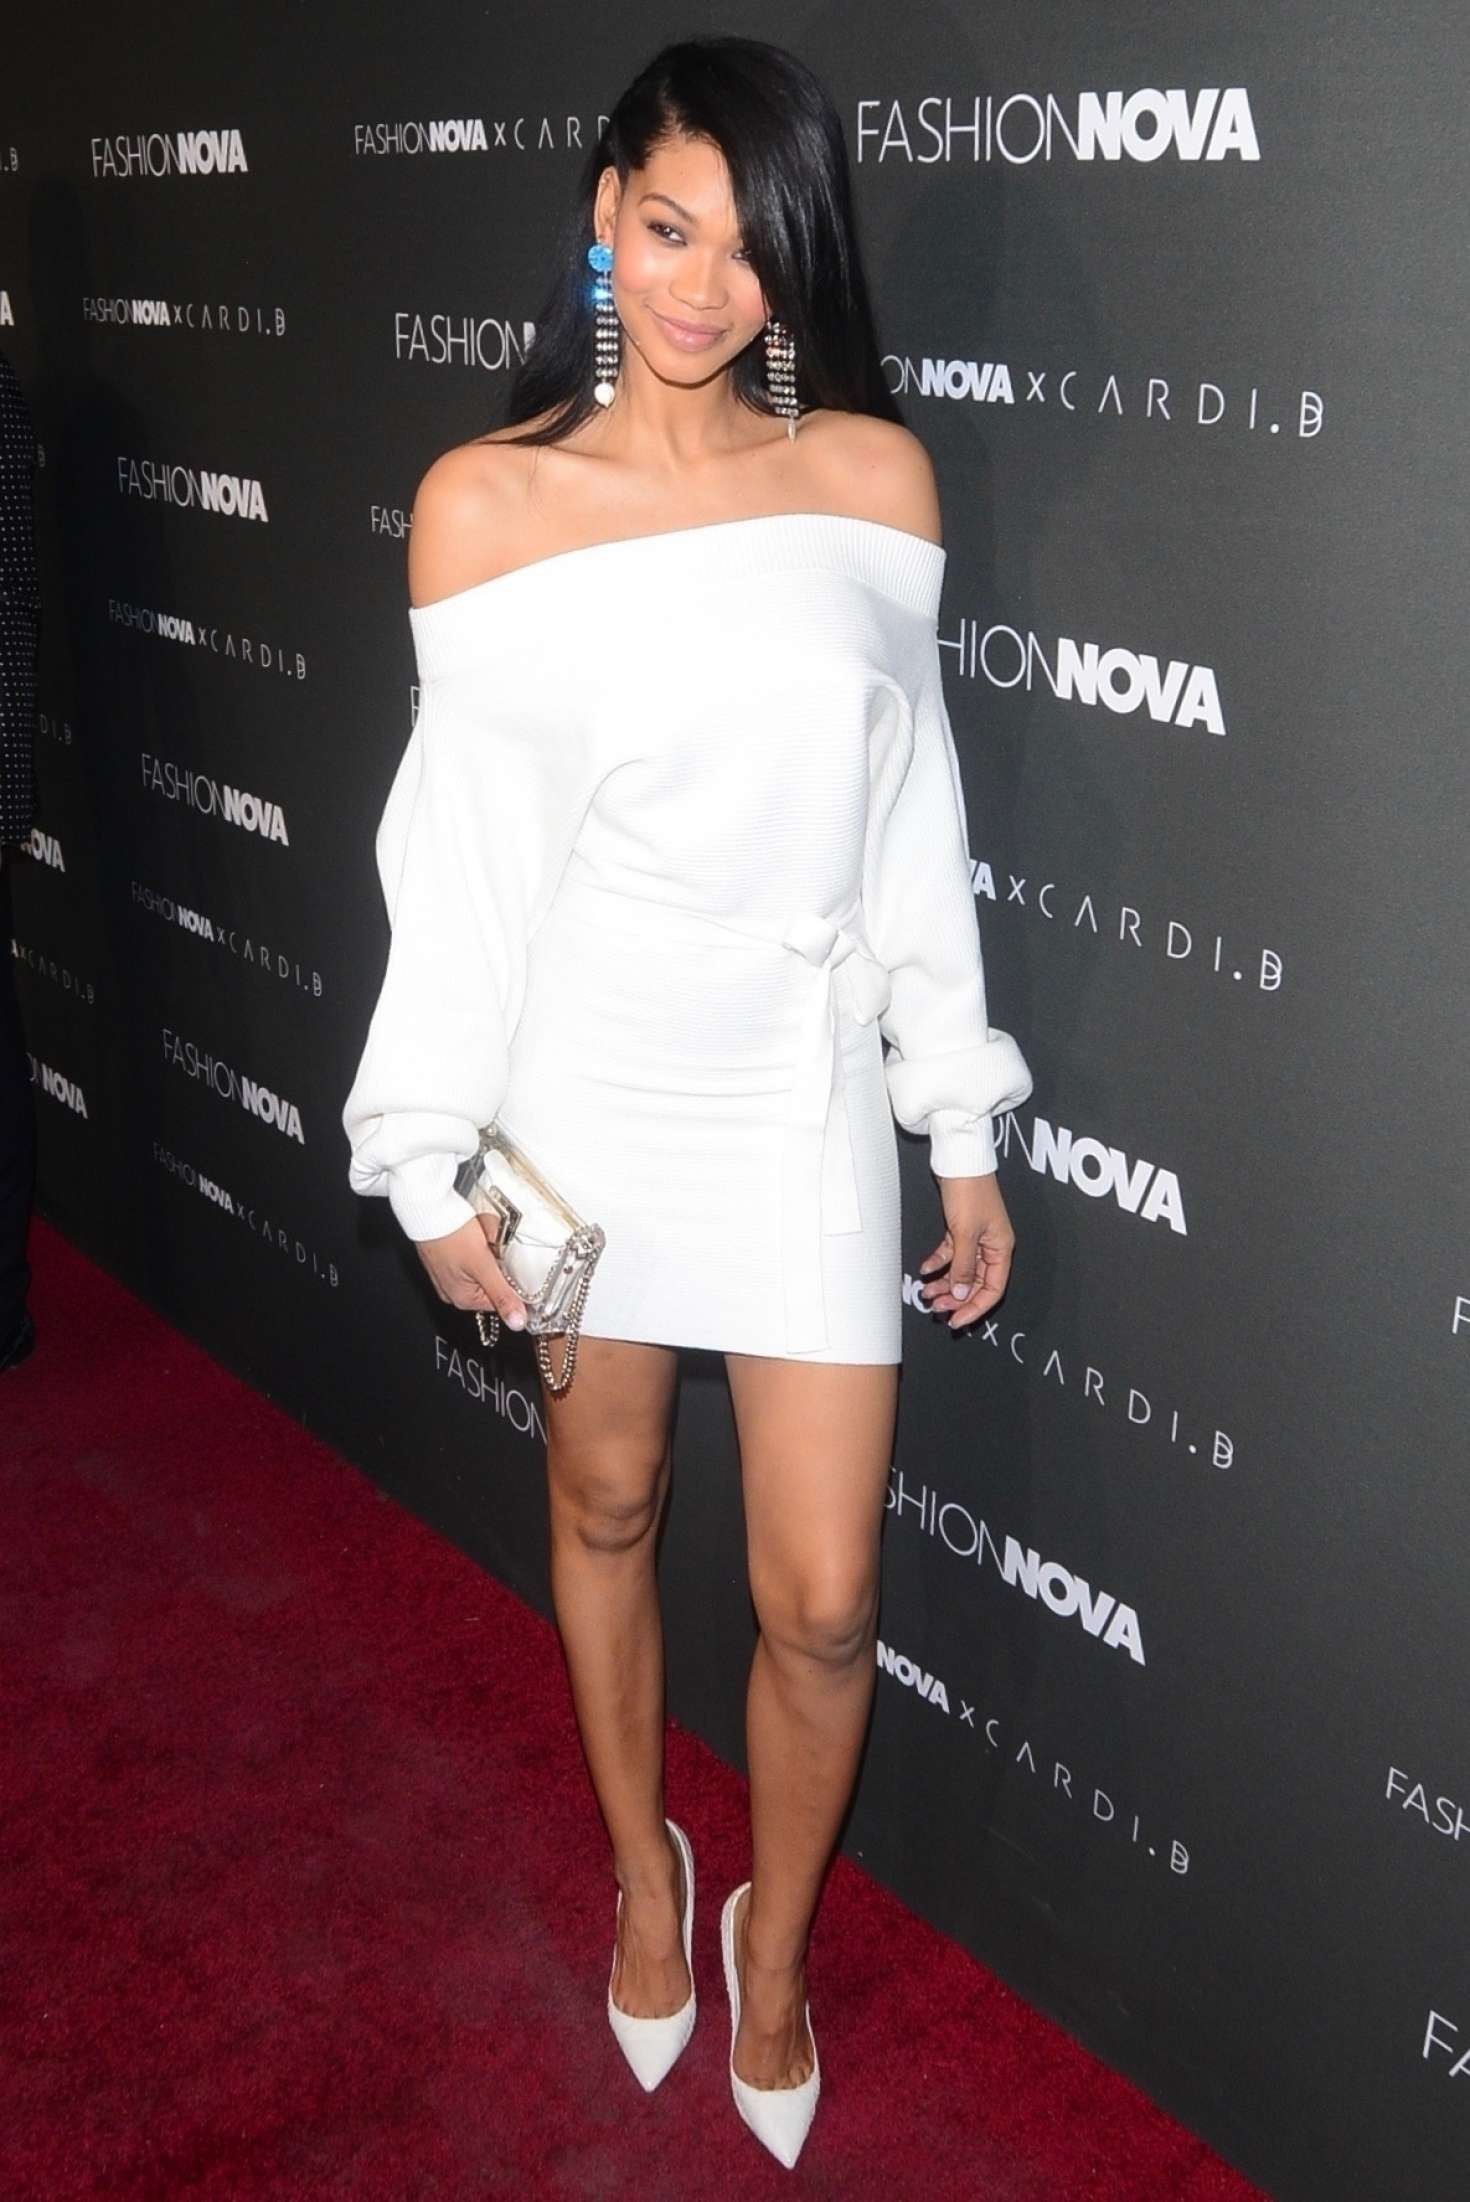 Chanel Iman – Fashion Nova x Cardi B Event in Hollywood